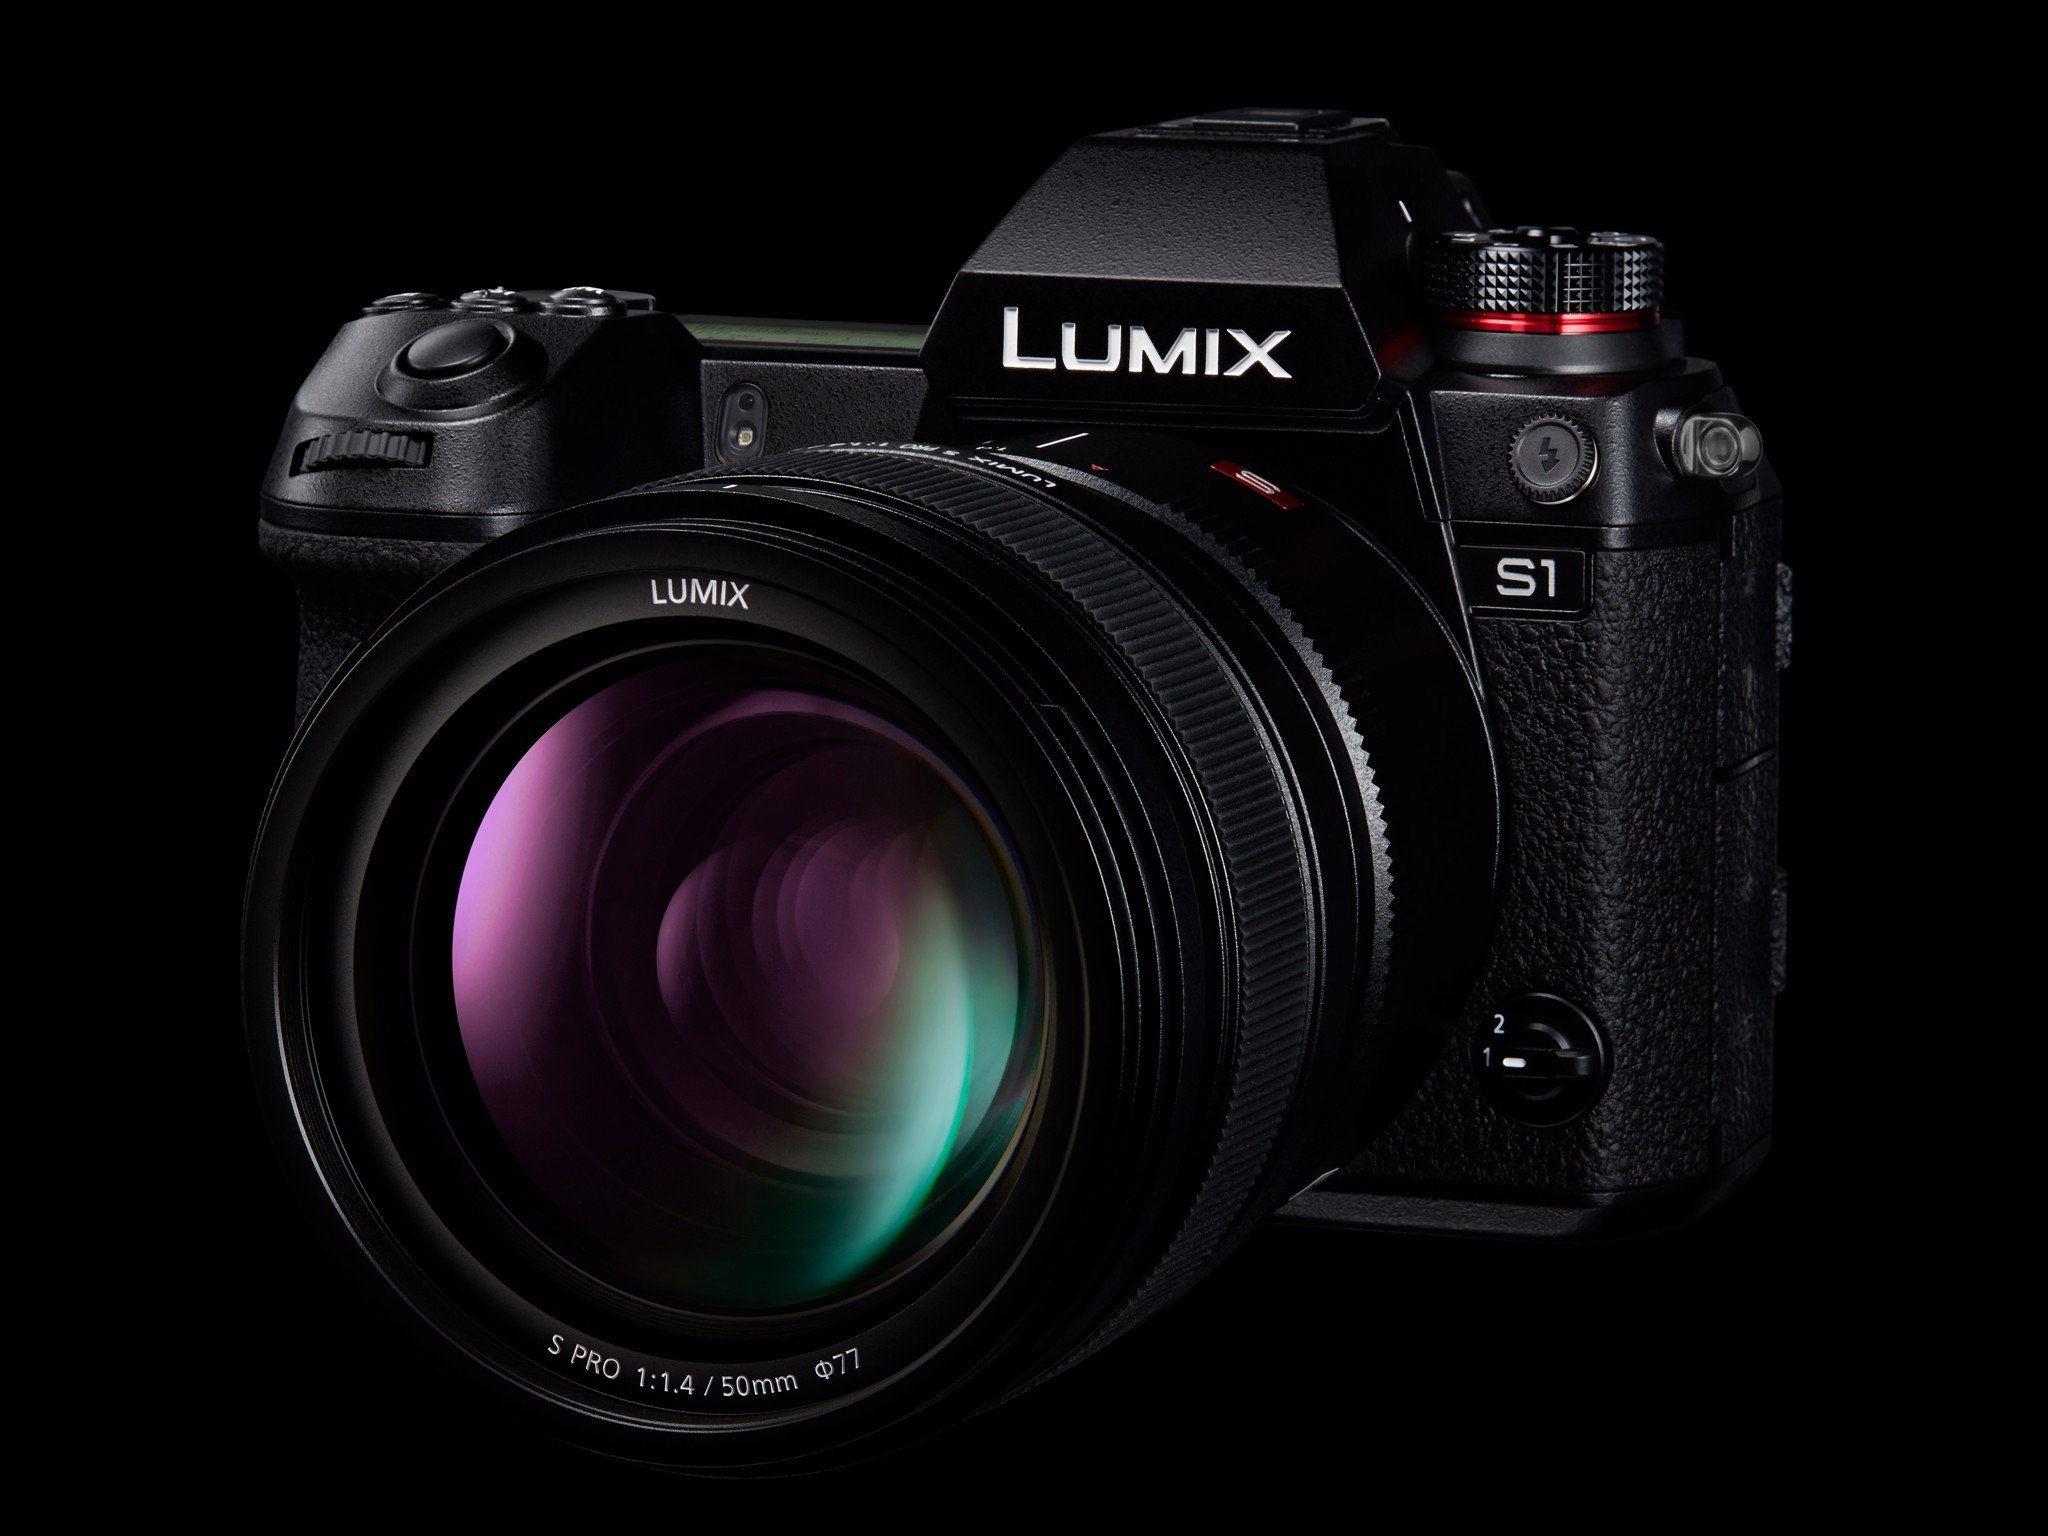 SO SÁNH PANASONIC LUMIX S1 VS S1R